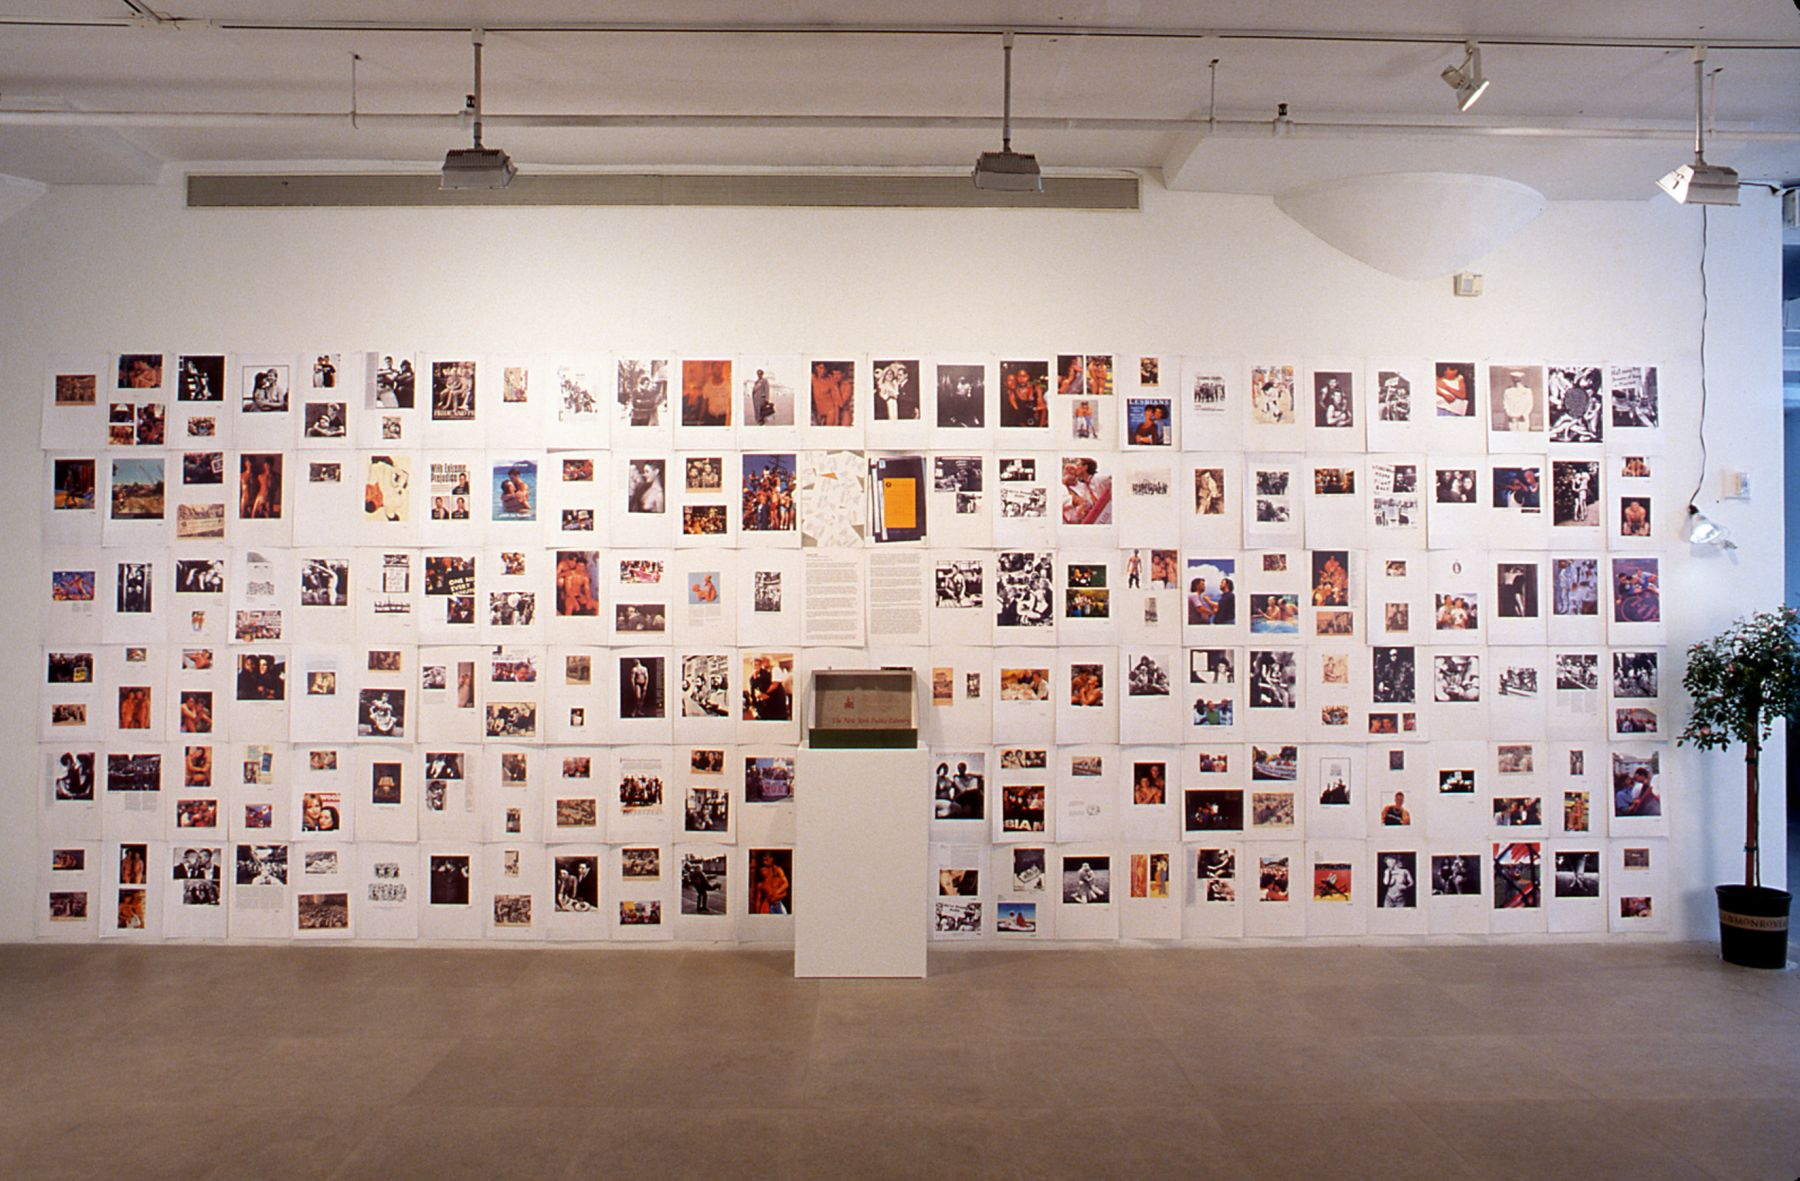 Christian Holstad, We'll Make Great Mud, 2002/2003, Installation view, 234 prints on cardstock, 11 x 17 inches each